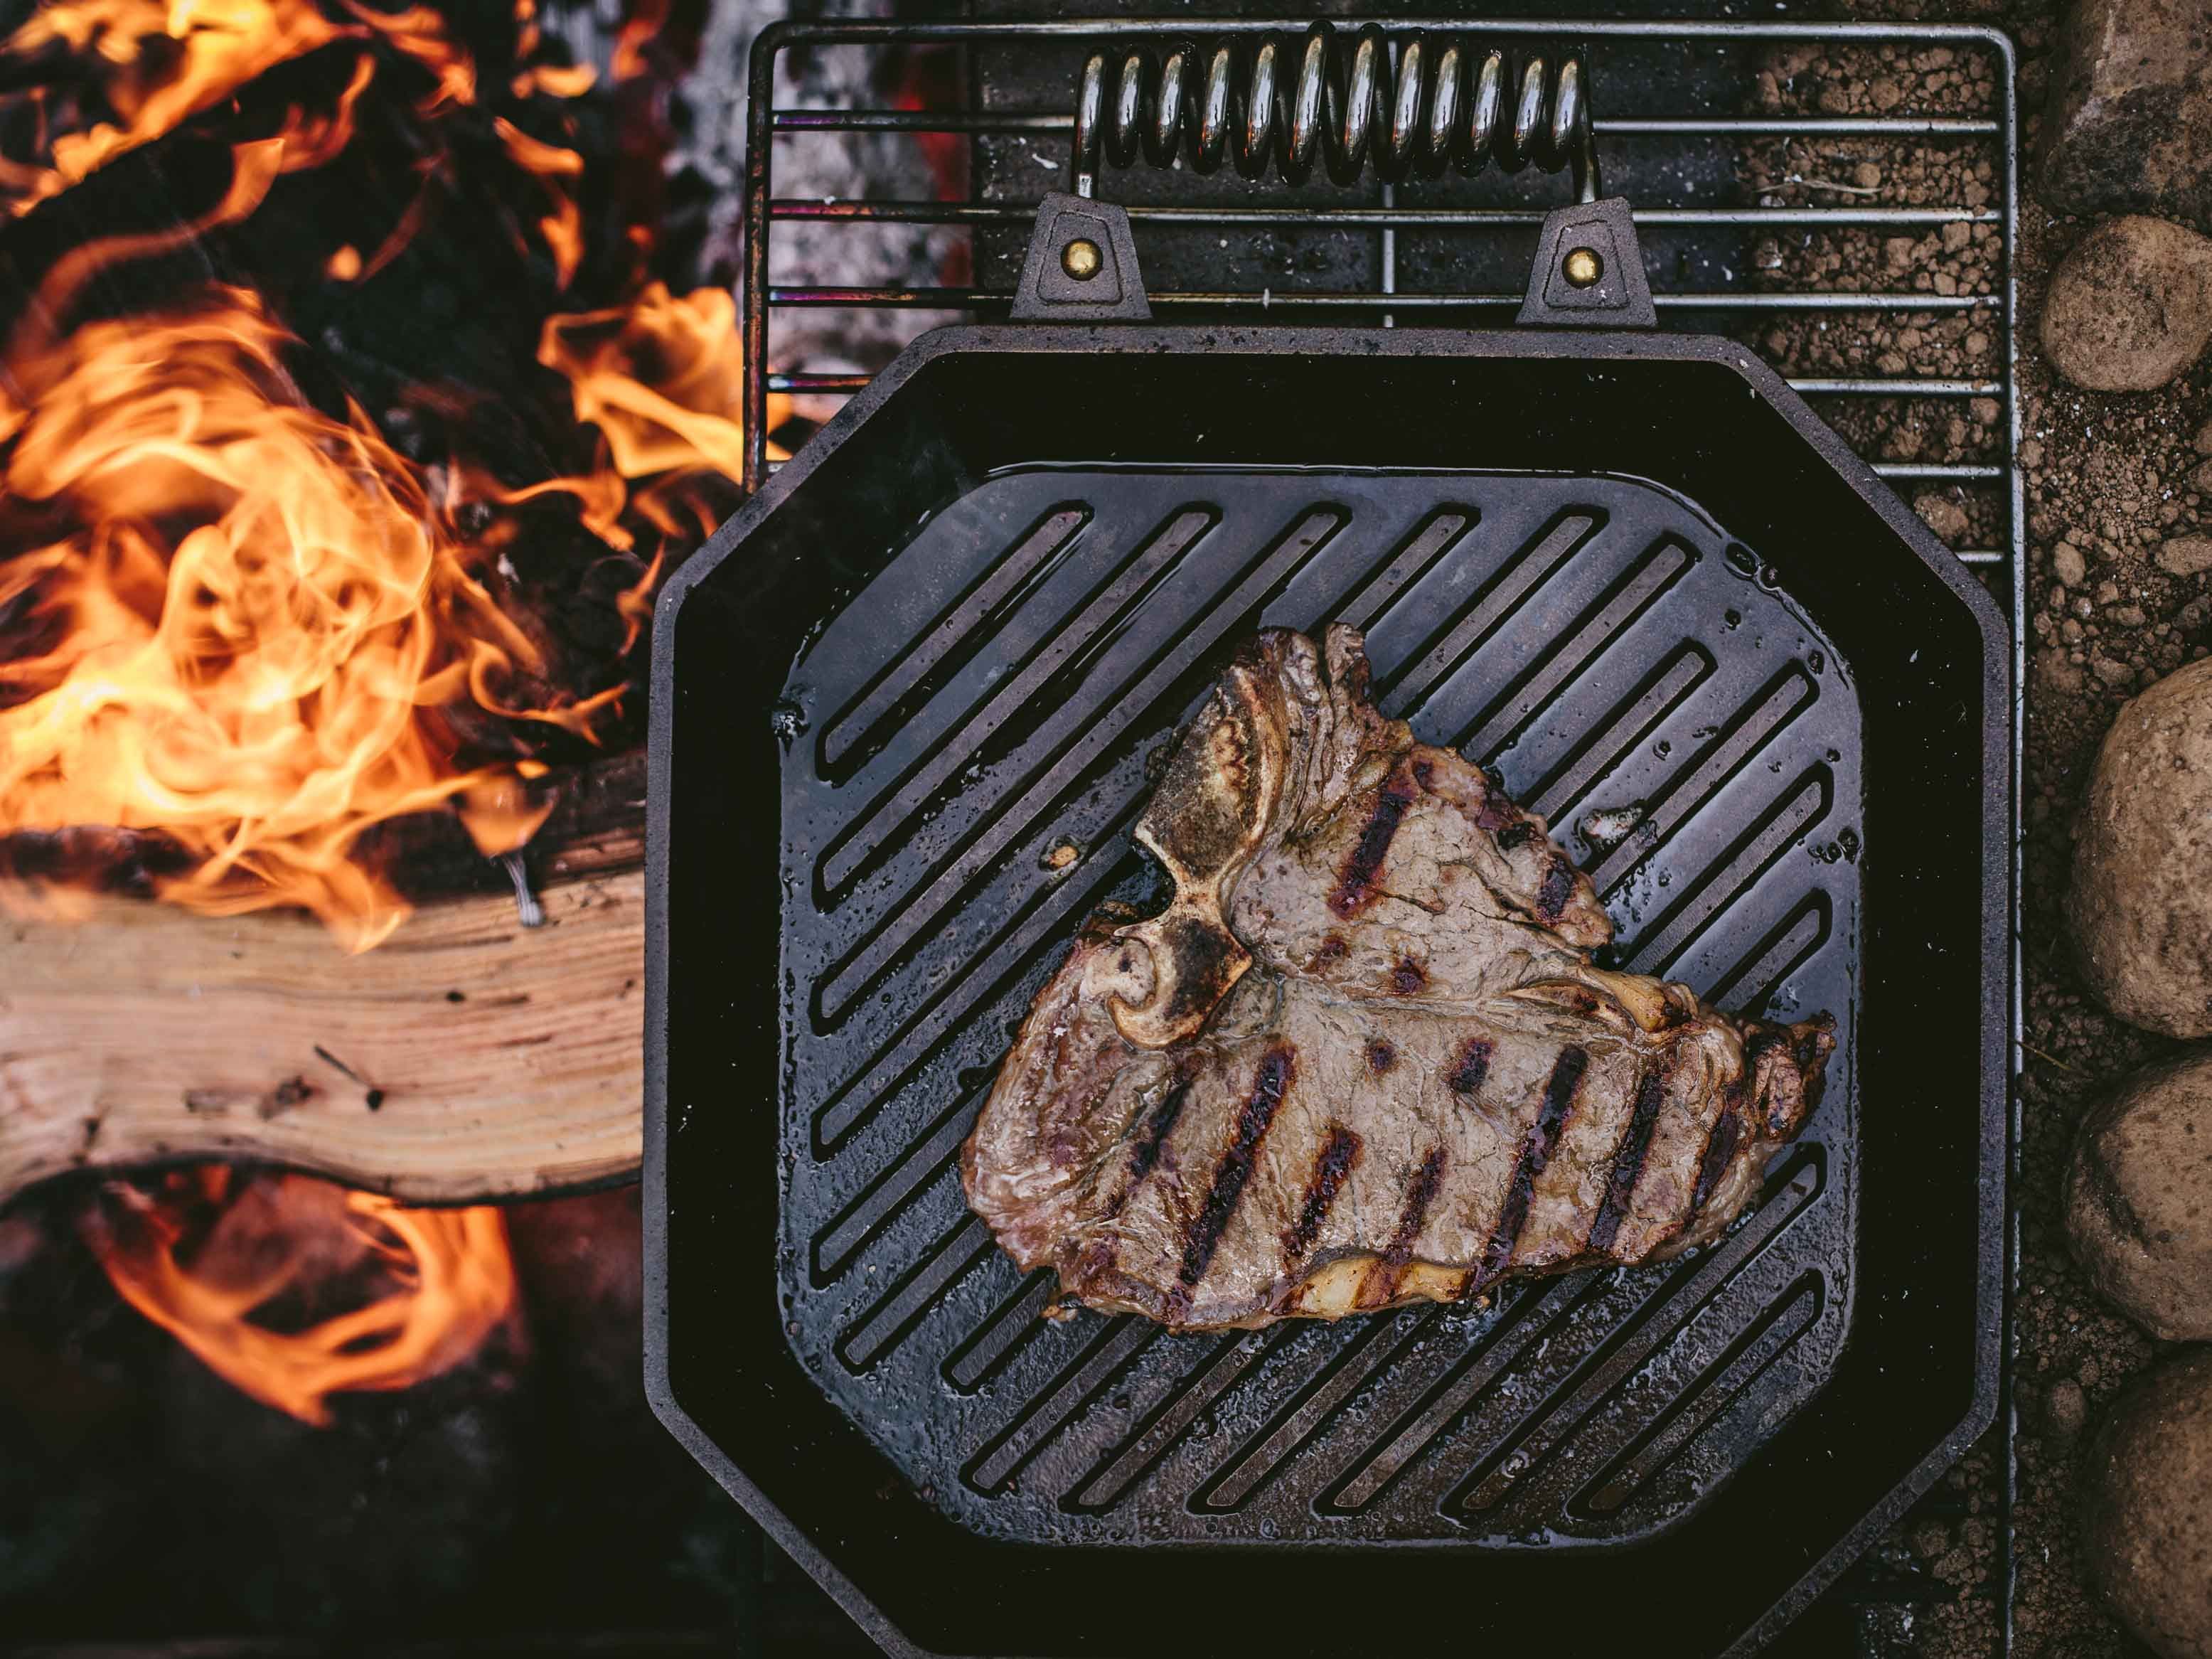 FINEX Cast Iron Grill Pan over the coals